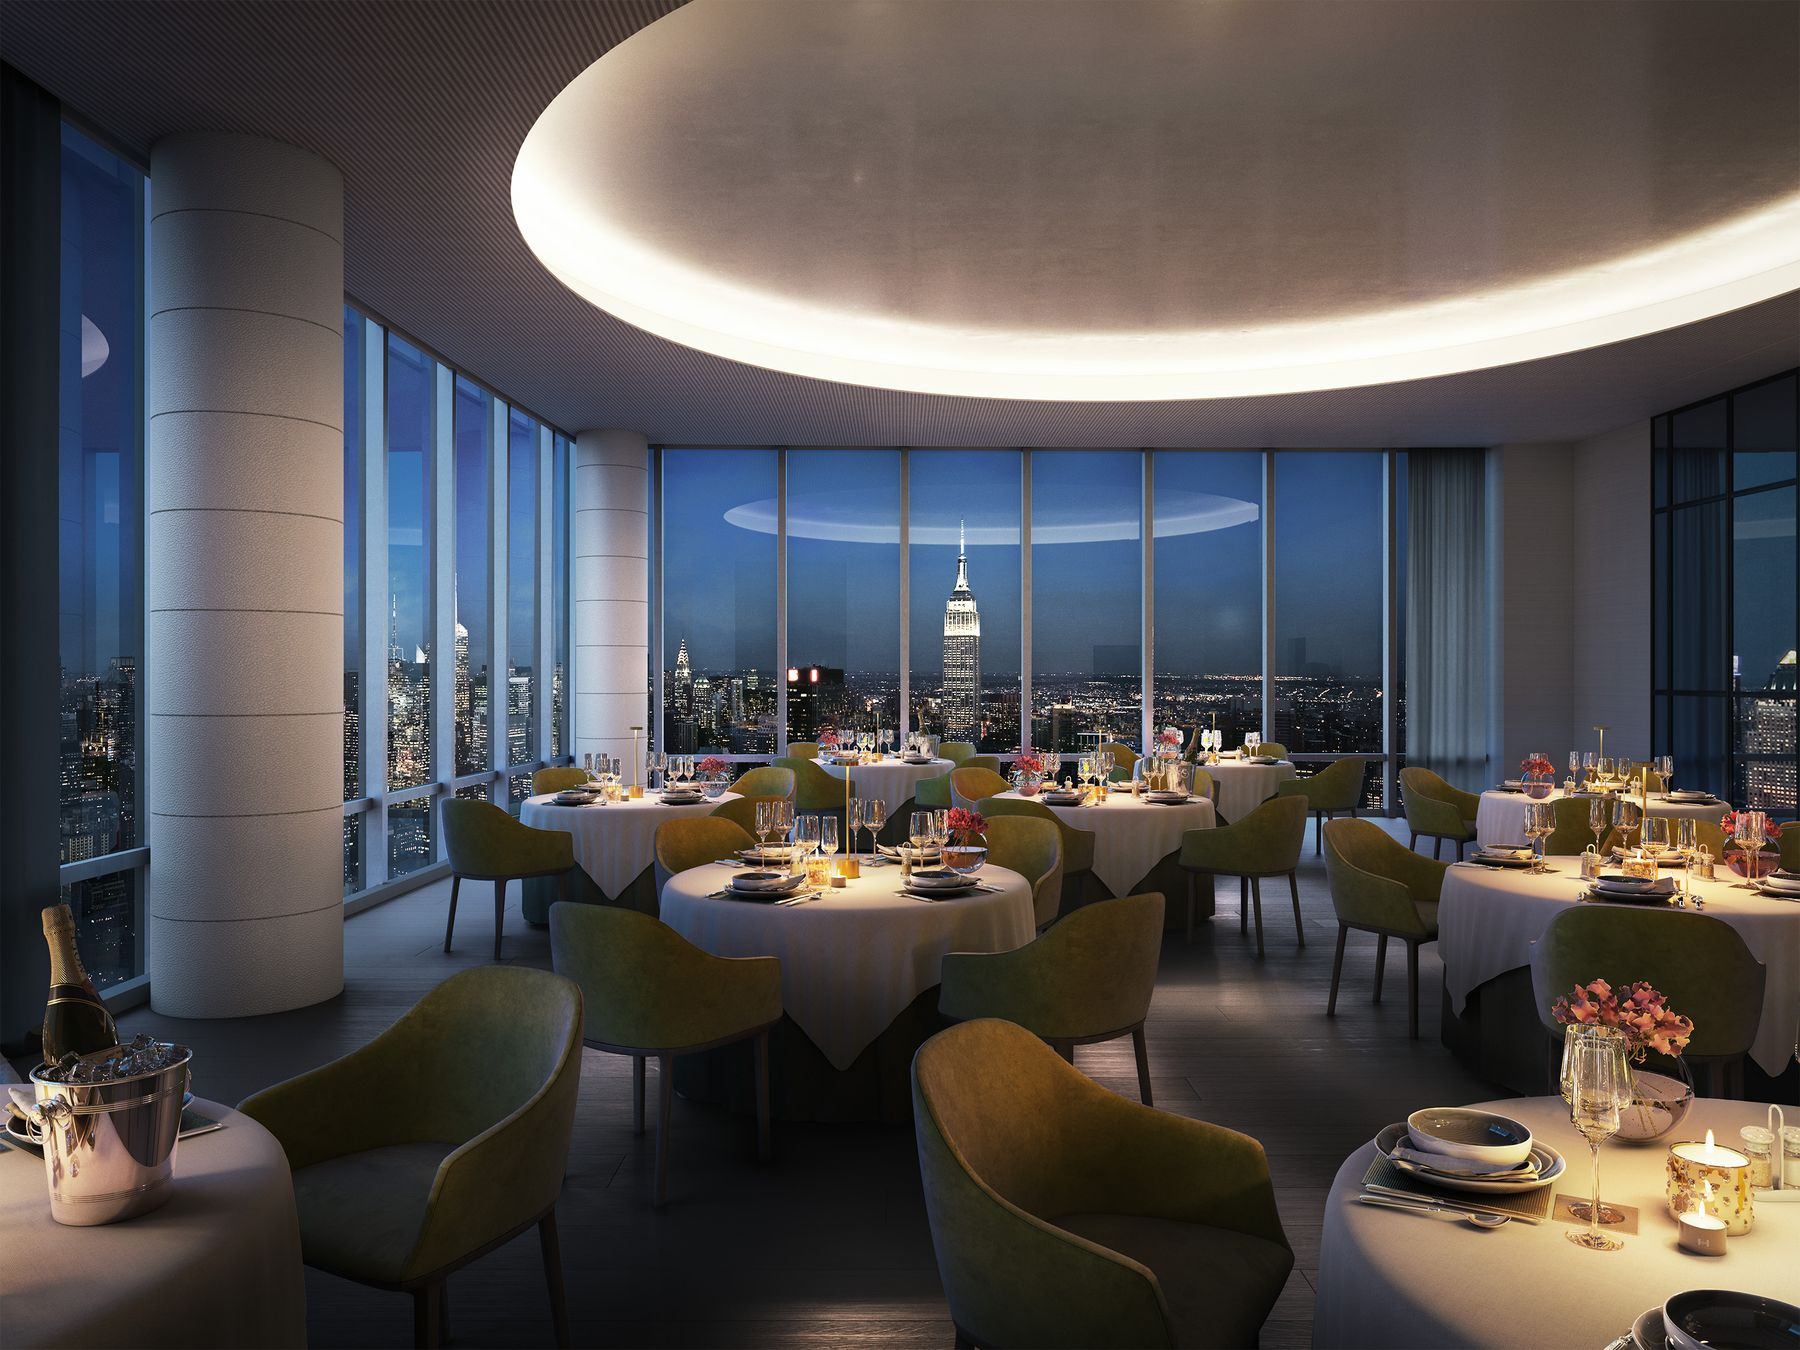 Private Dining Room Preview the Over-The-Top Amenities Coming to 15 Hudson Yards Related Companies Oxford Properties Rockwell Group Diller Scofidio + Renfro